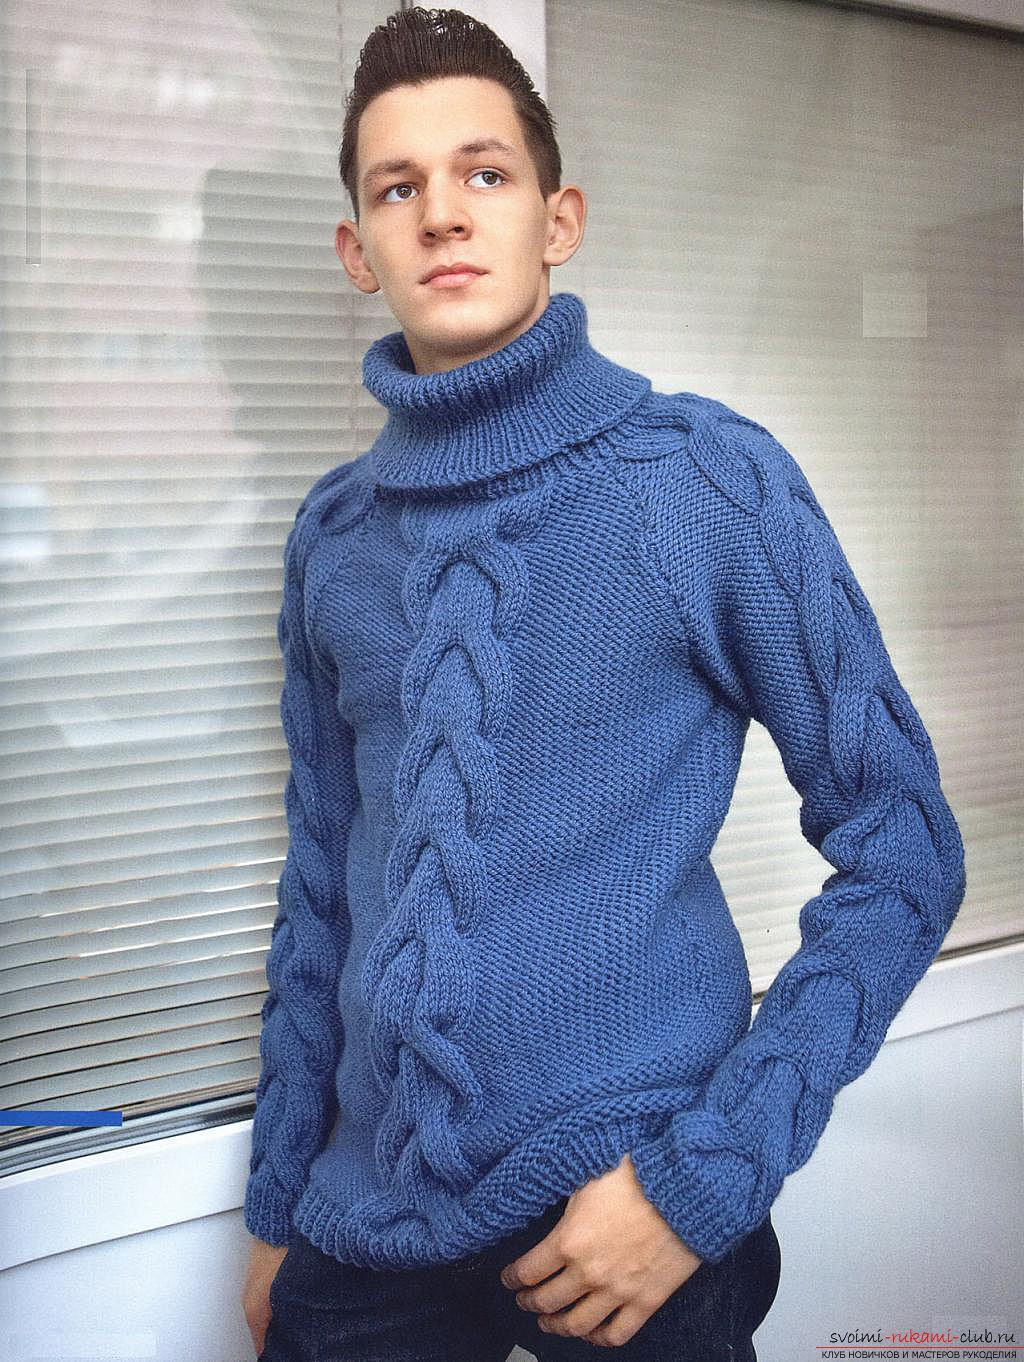 knitted knitted sweater. Photo №4